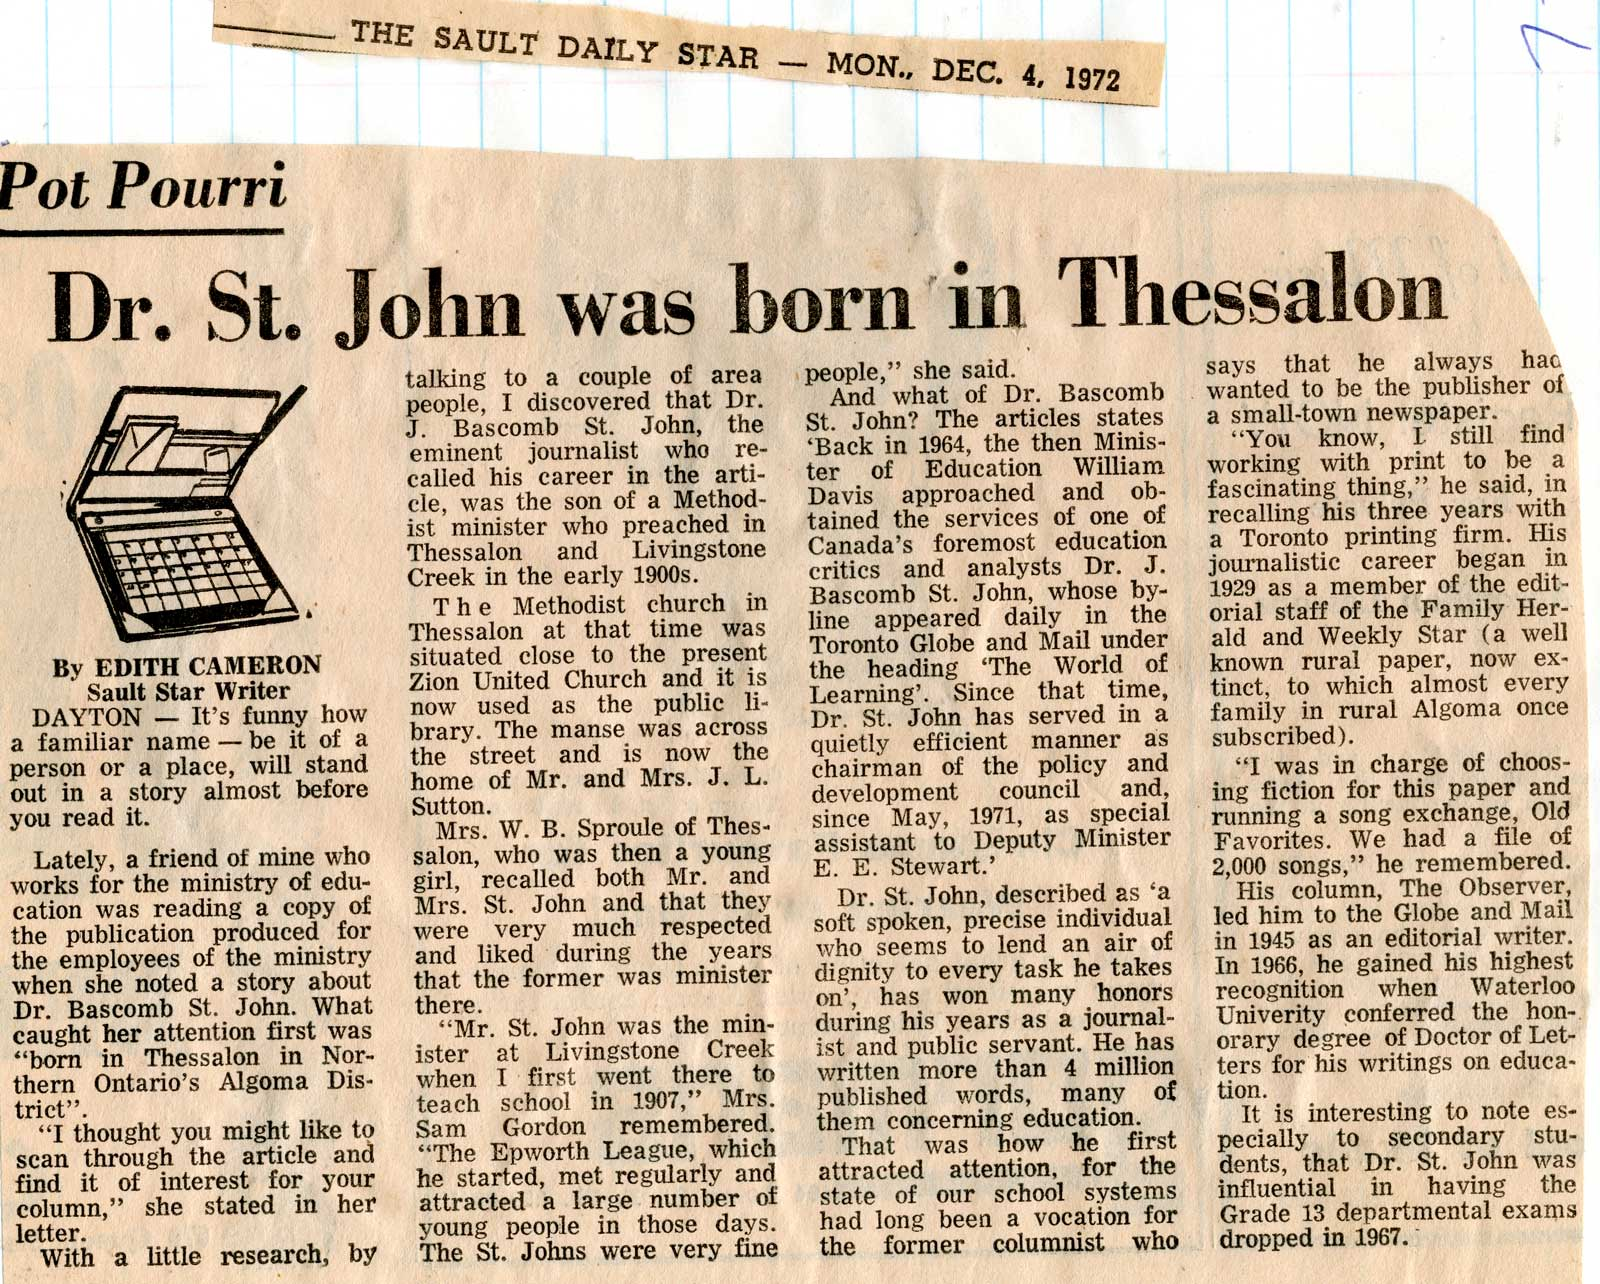 DrSt John was born in Thessalon Sault Star Clipping 1972 A – Sault Star Birth Announcements